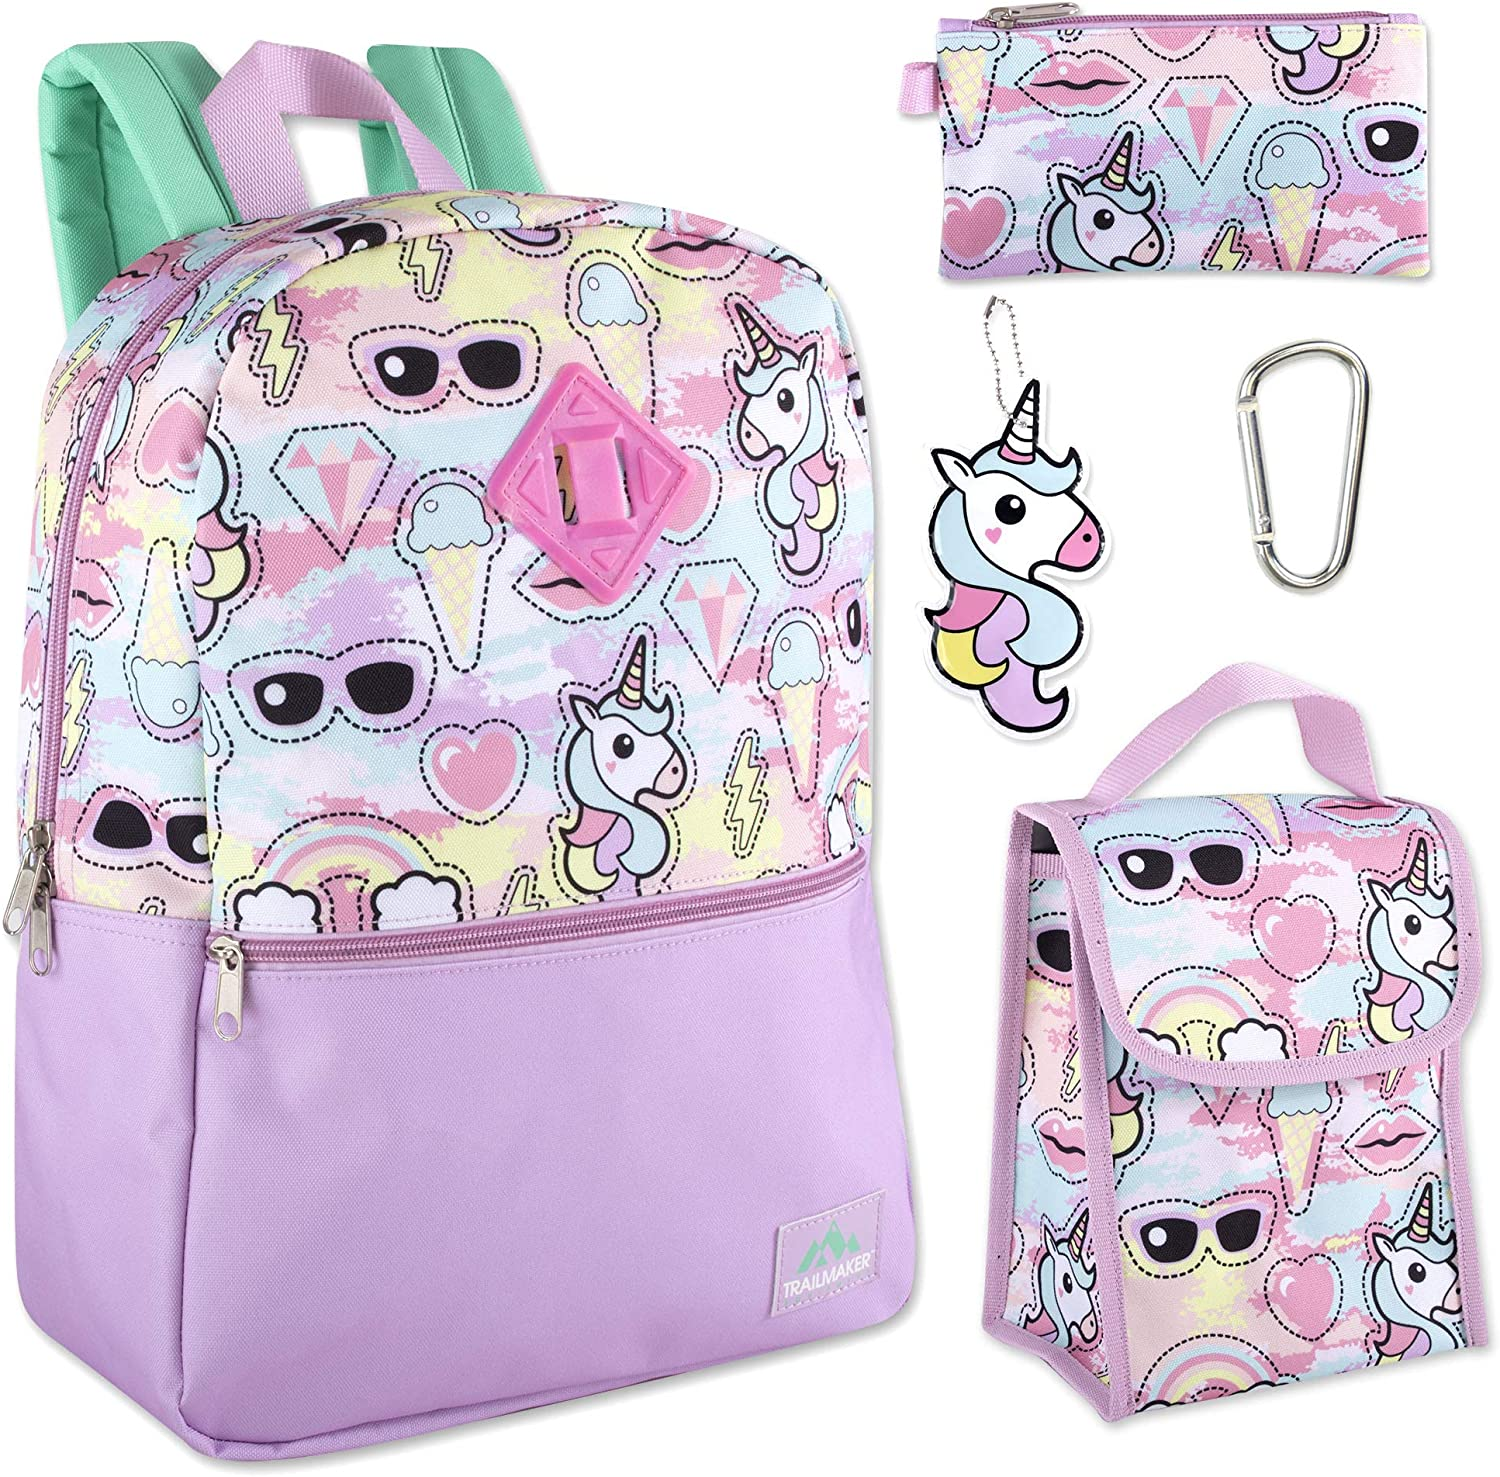 Trail maker 5 in 1 Full Size Character School Backpack and Lunch Bag Set For Girls (Unicorns)